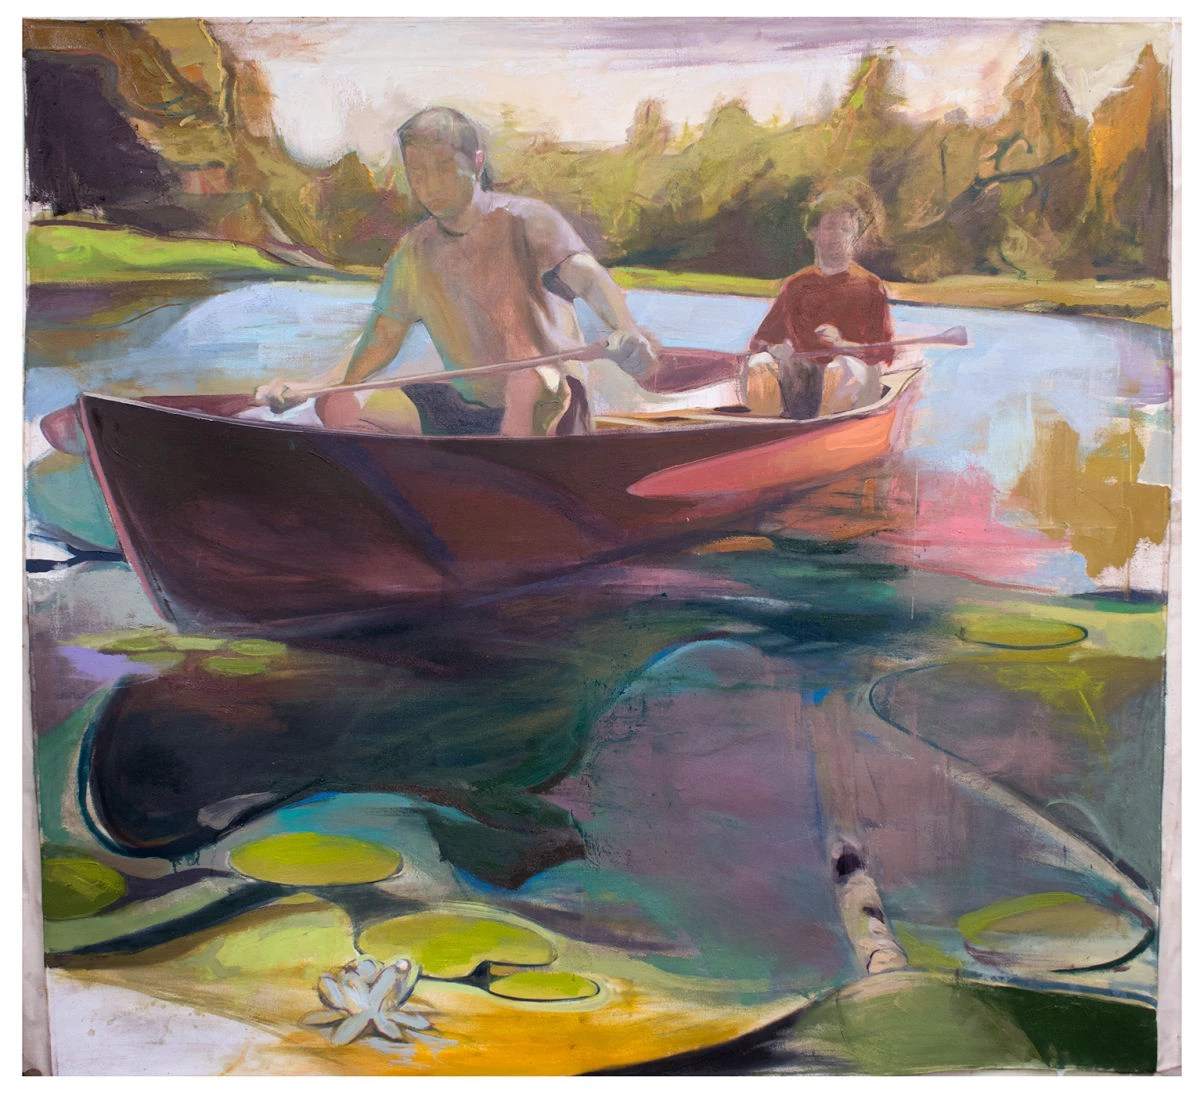 An oil painting of two boys in a canoe on a lake. The painting is in an impressionistic style where the colors blend together and the boys in the canoe do not have distinguishable faces. The boy at the bow of the canoe is wearing a white shirt and blue shorts and the boy at the stern is wearing a red shirt and blue shorts. Both boys are pale and have their paddles out of the water, as if they are resting and taking in their surroundings. The canoe is a shade of reddish brown that blends into the water, which is mixed with shades of pastel green, blue, periwinkle, and pink. There are several lilly pads with white flowers in the lake. The background is a pine forest in a swampy green shade and the sky is a murky white.